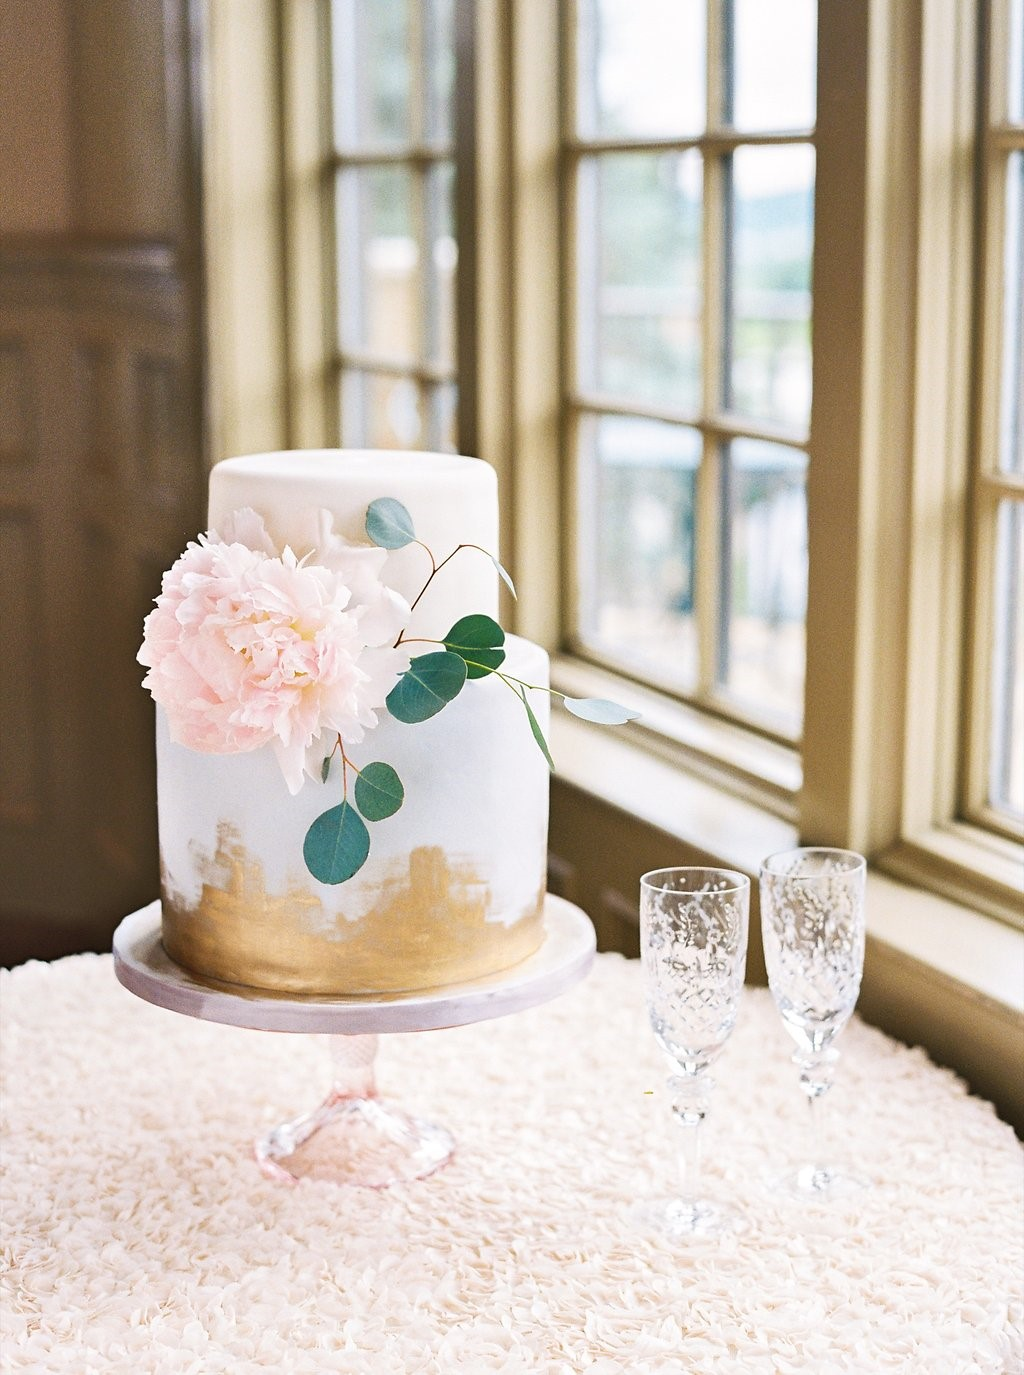 Best Wedding Cakes In Raleigh